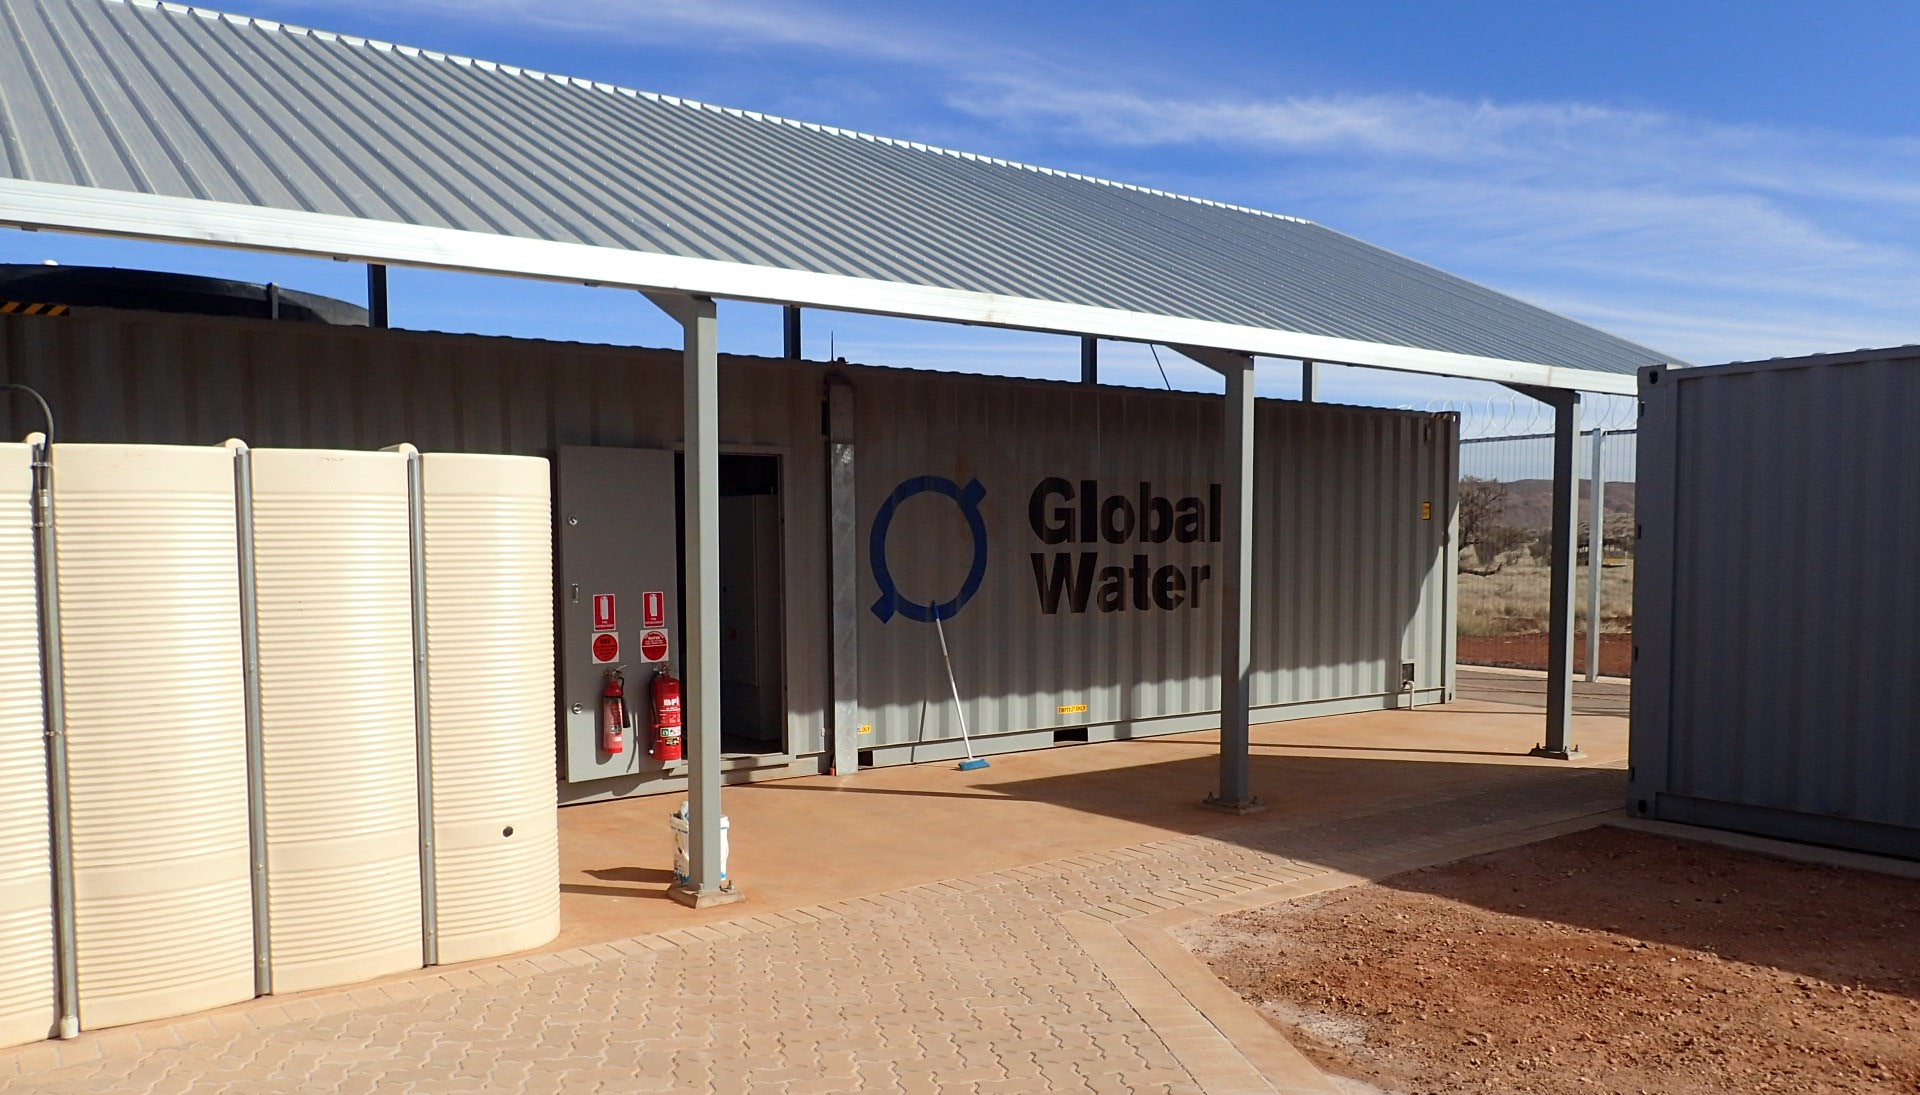 Global Water's wastewater treatment facility